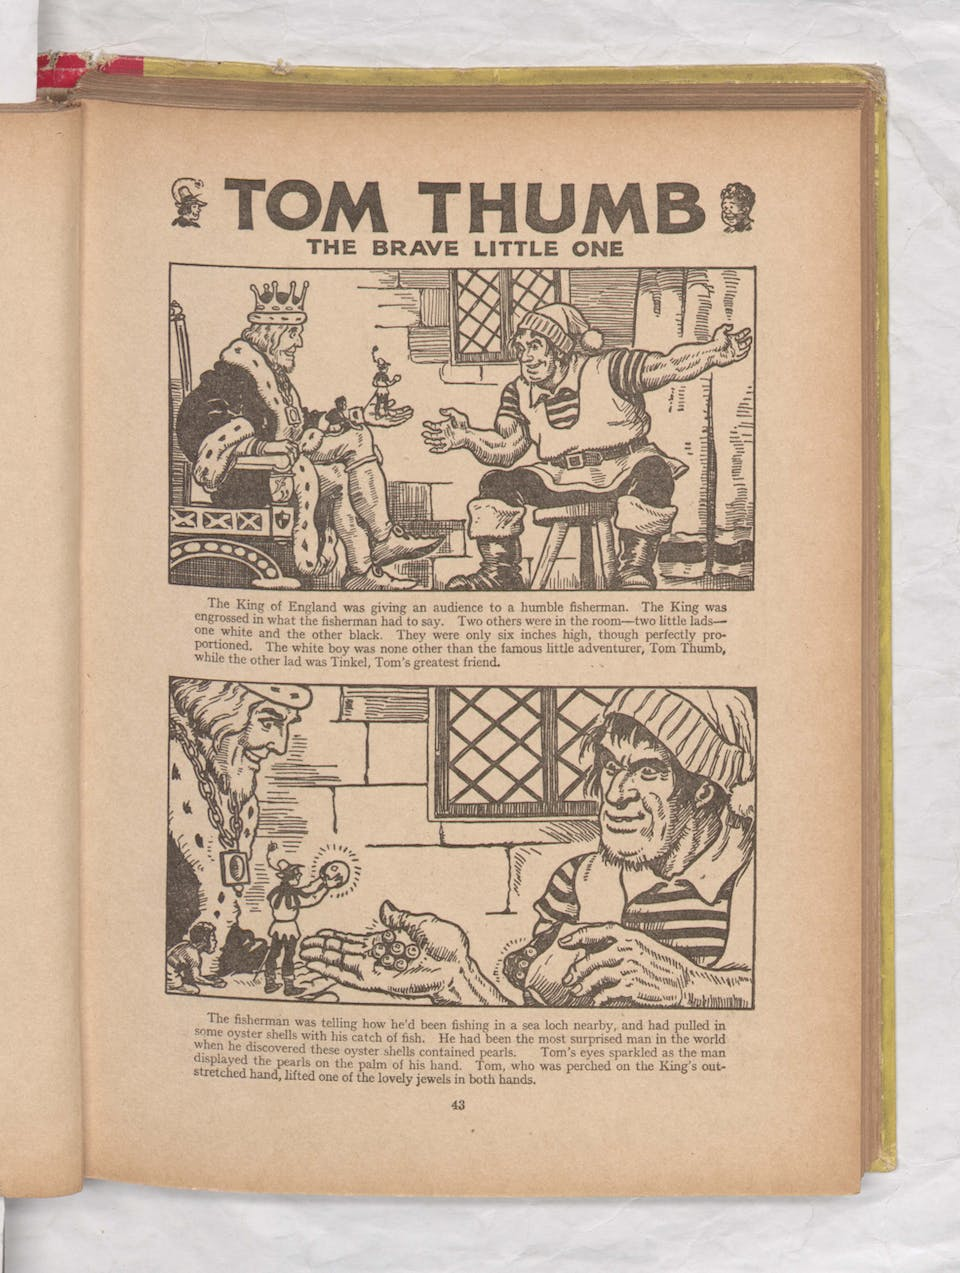 Beano Book 1942 - Tom Thumb